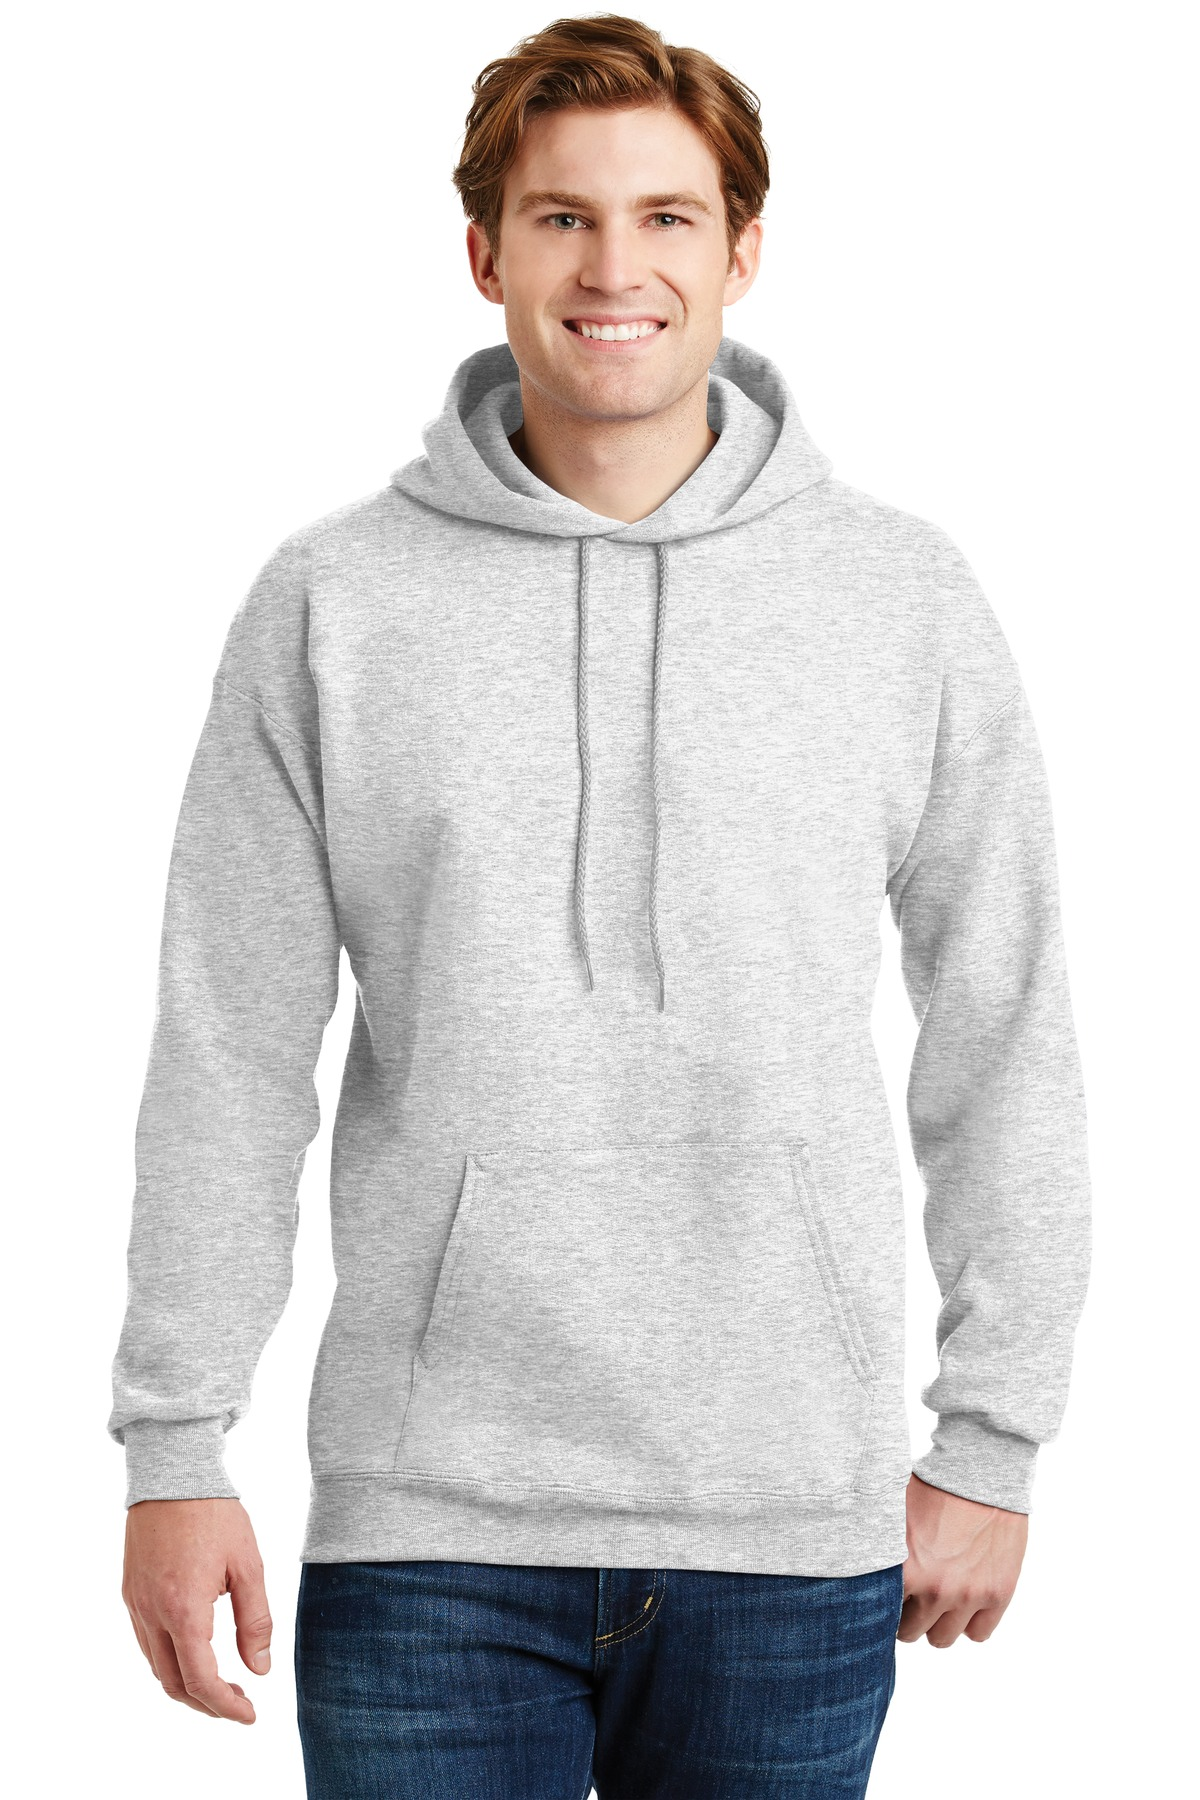 Hanes ®  Ultimate Cotton ®  - Pullover Hooded Sweatshirt.  F170 - Ash